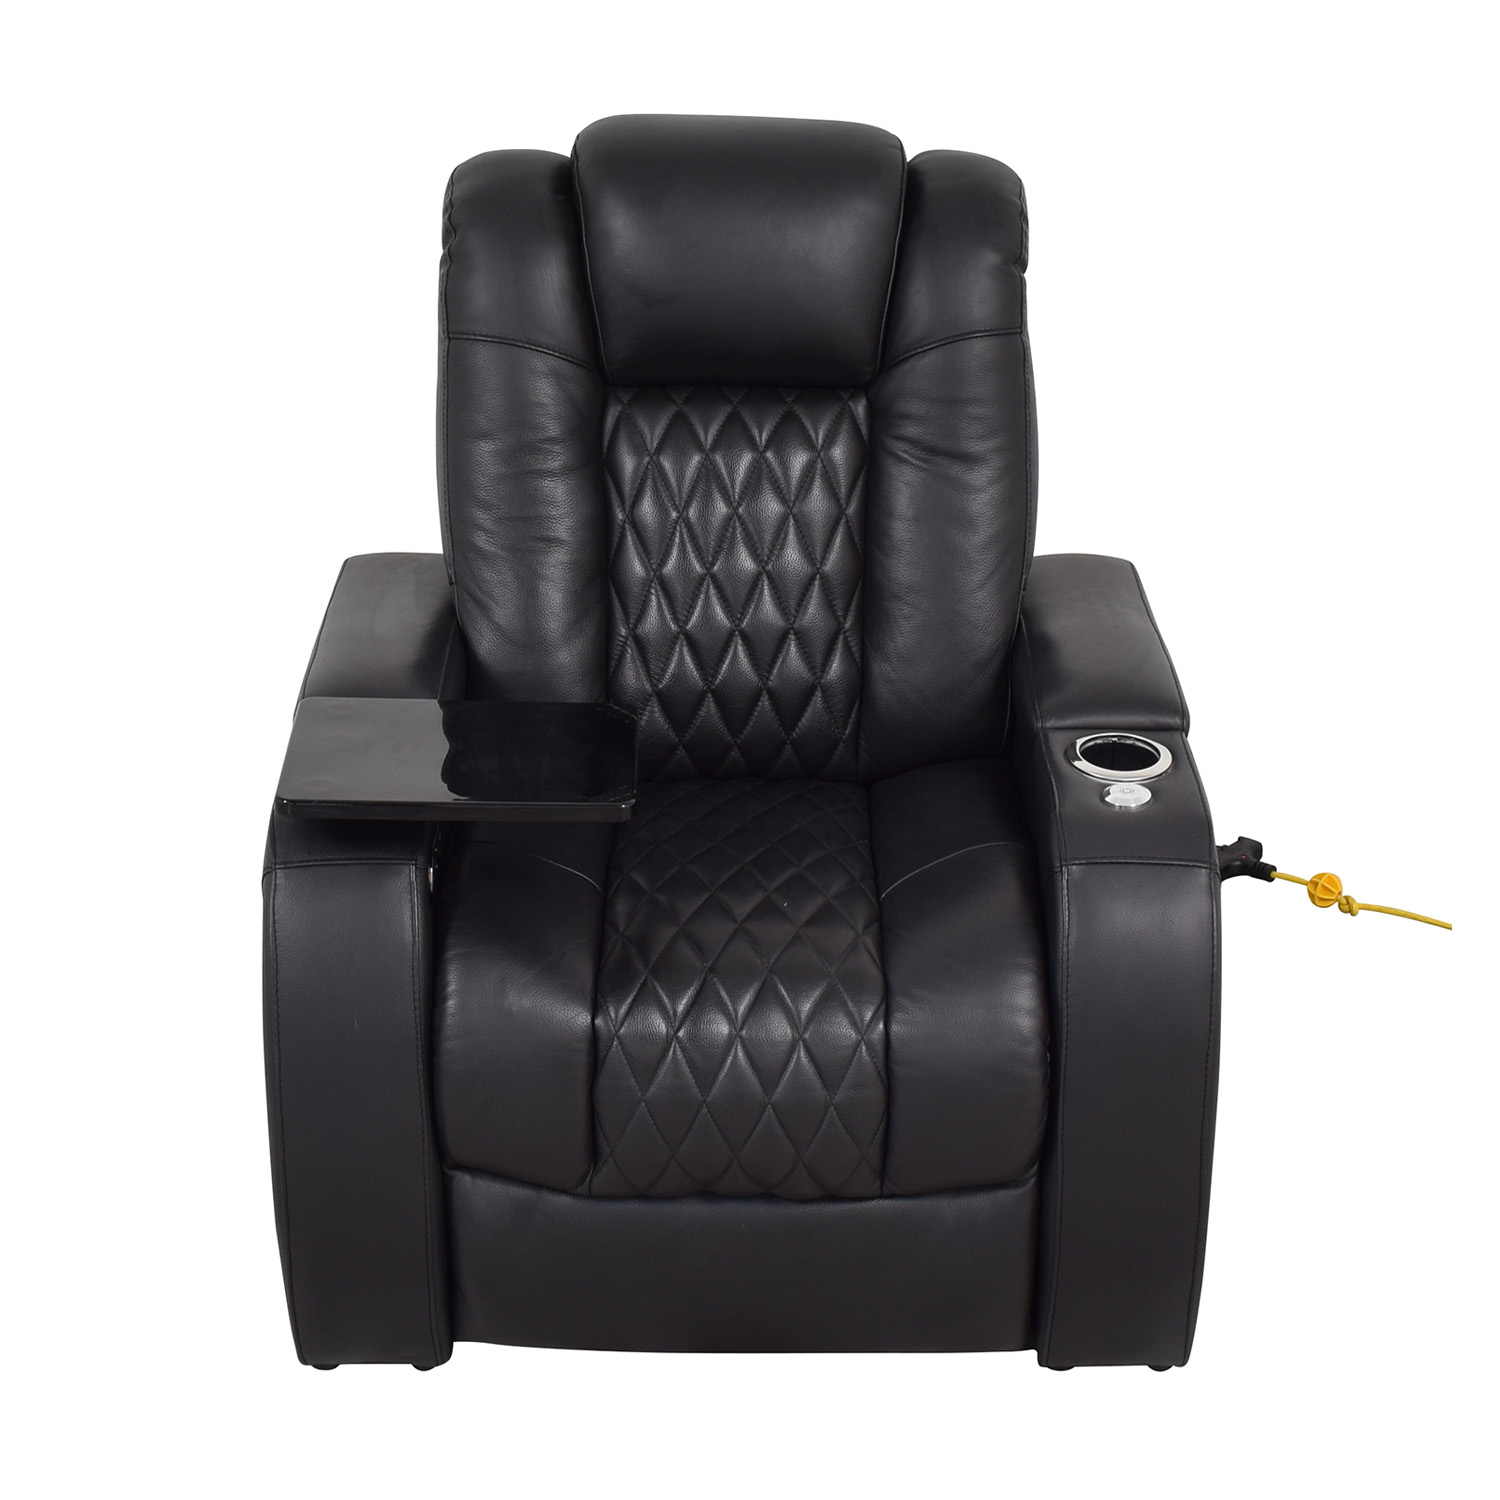 Seatcraft Seatcraft Diamante Home Theater Seating Leather Power Recliner on sale